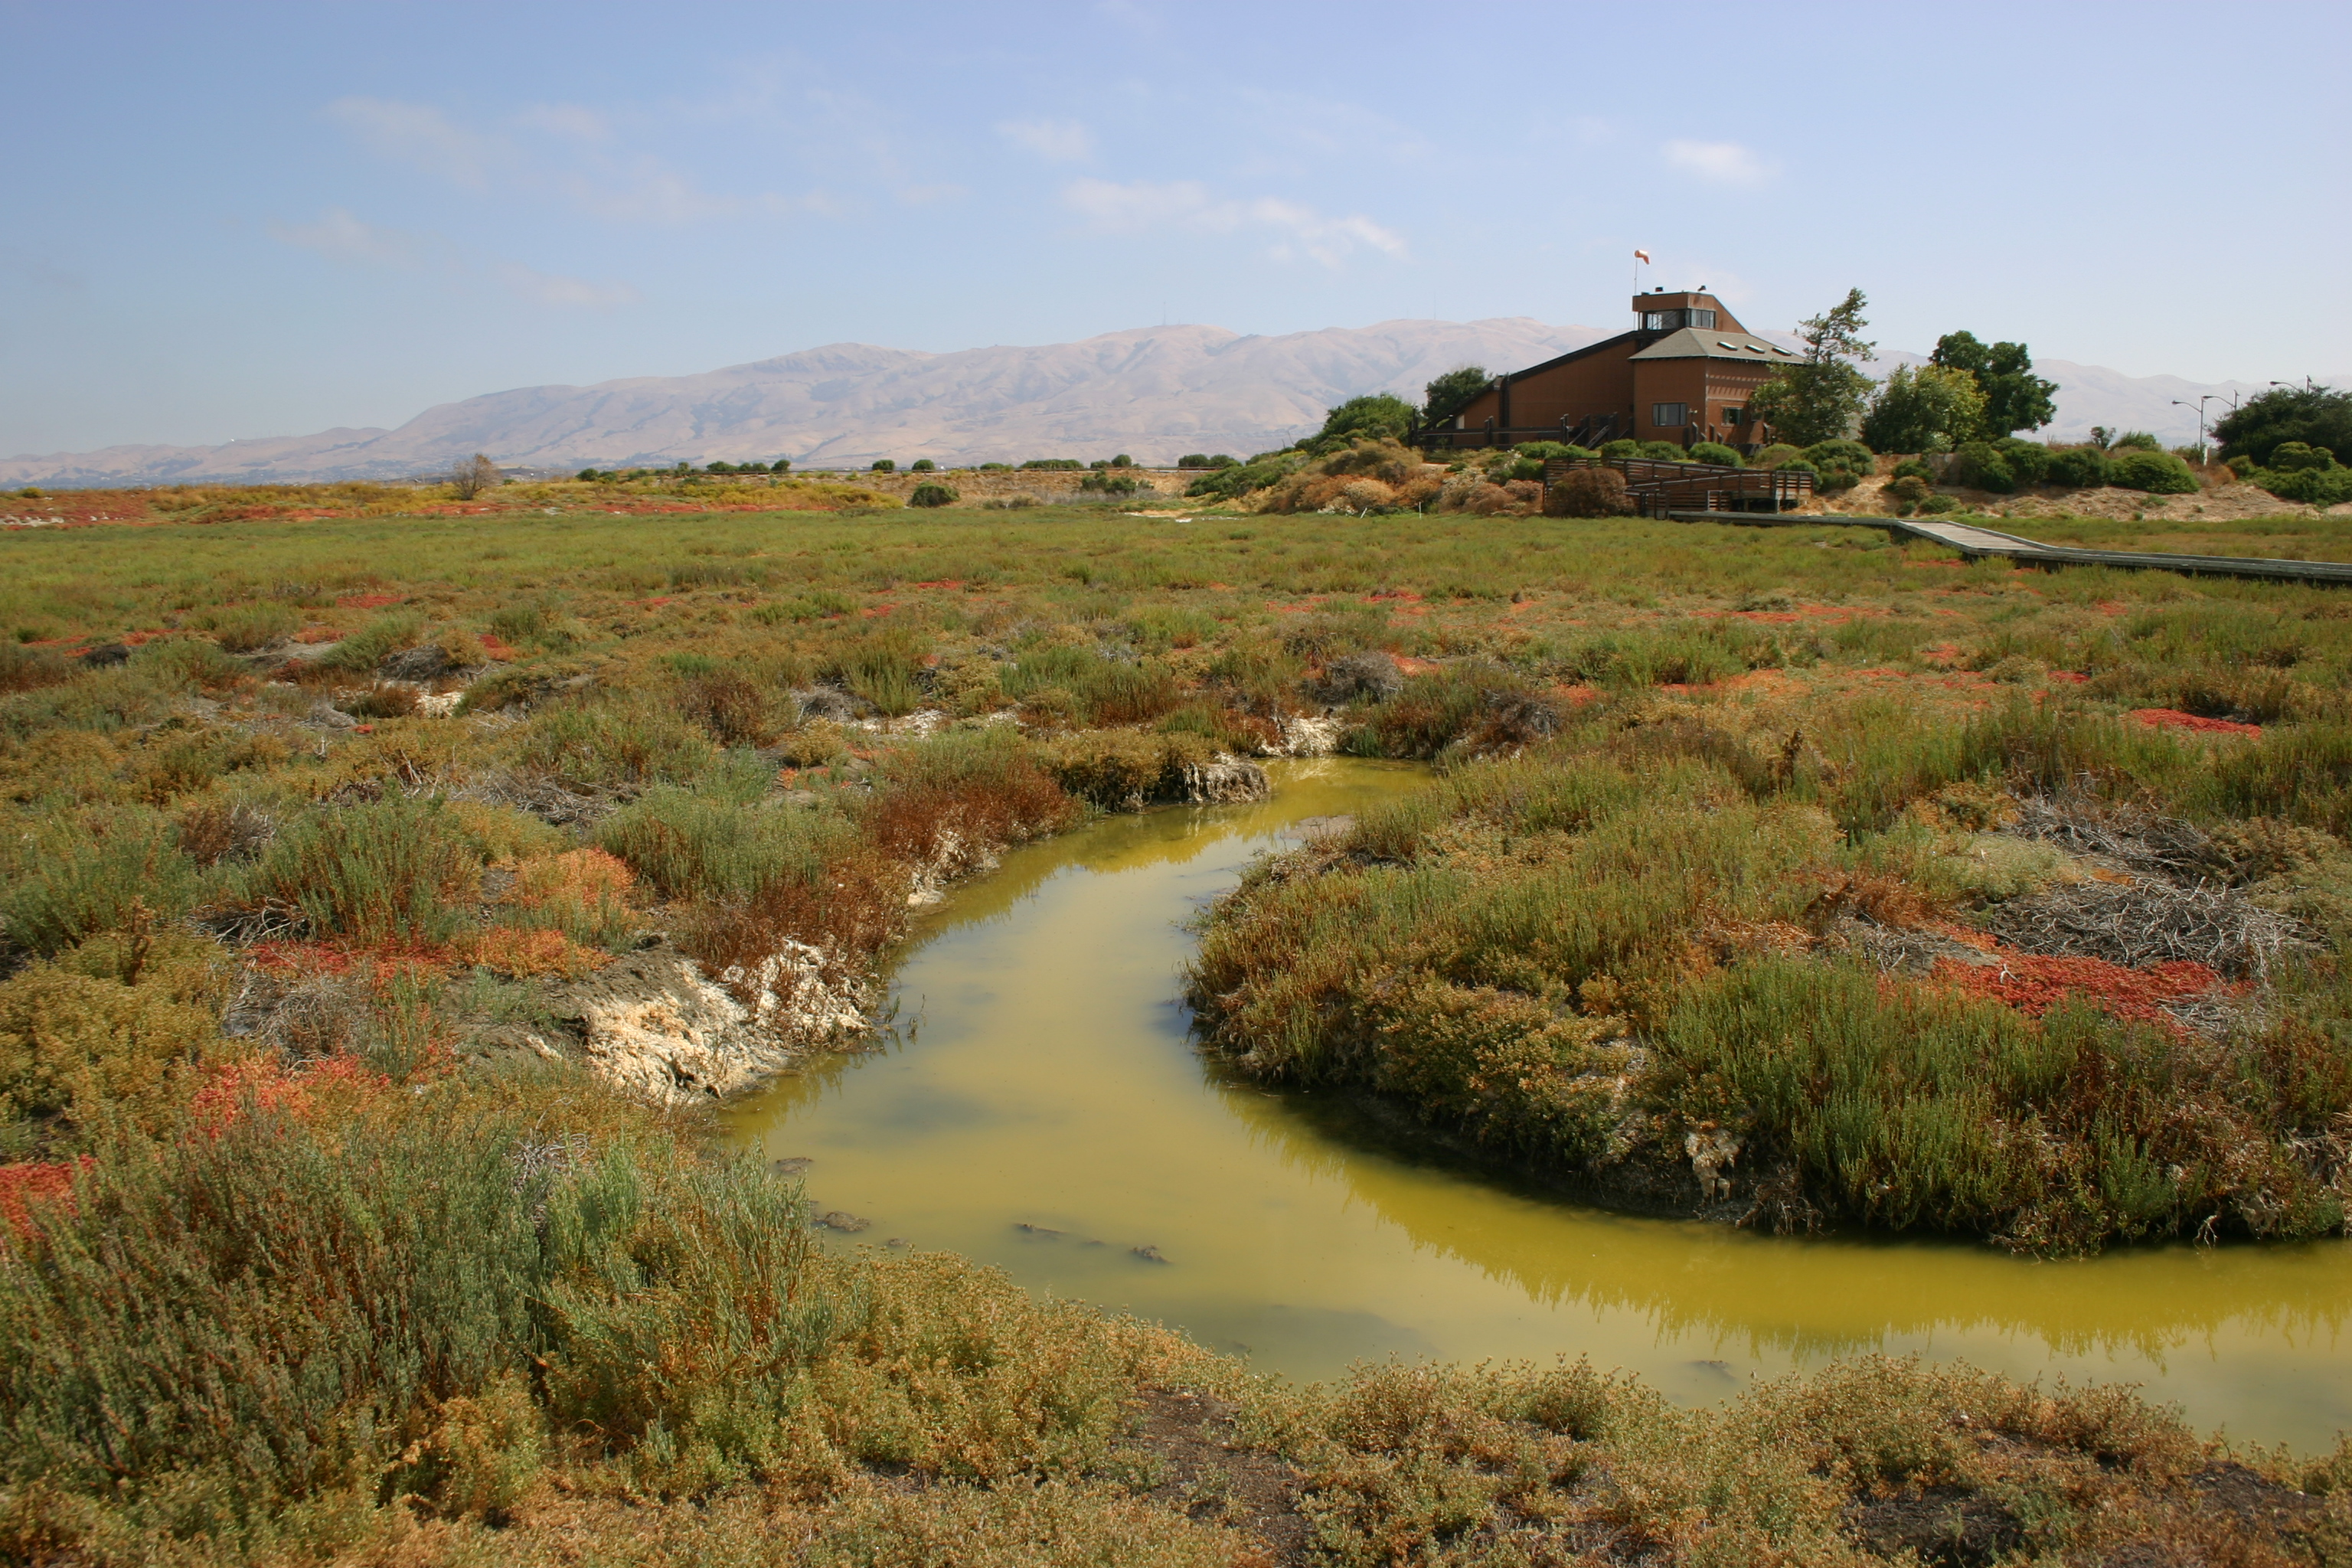 Colorful landscape surrounds a stagnant green river near the Environmental Education Center in Alviso, California.